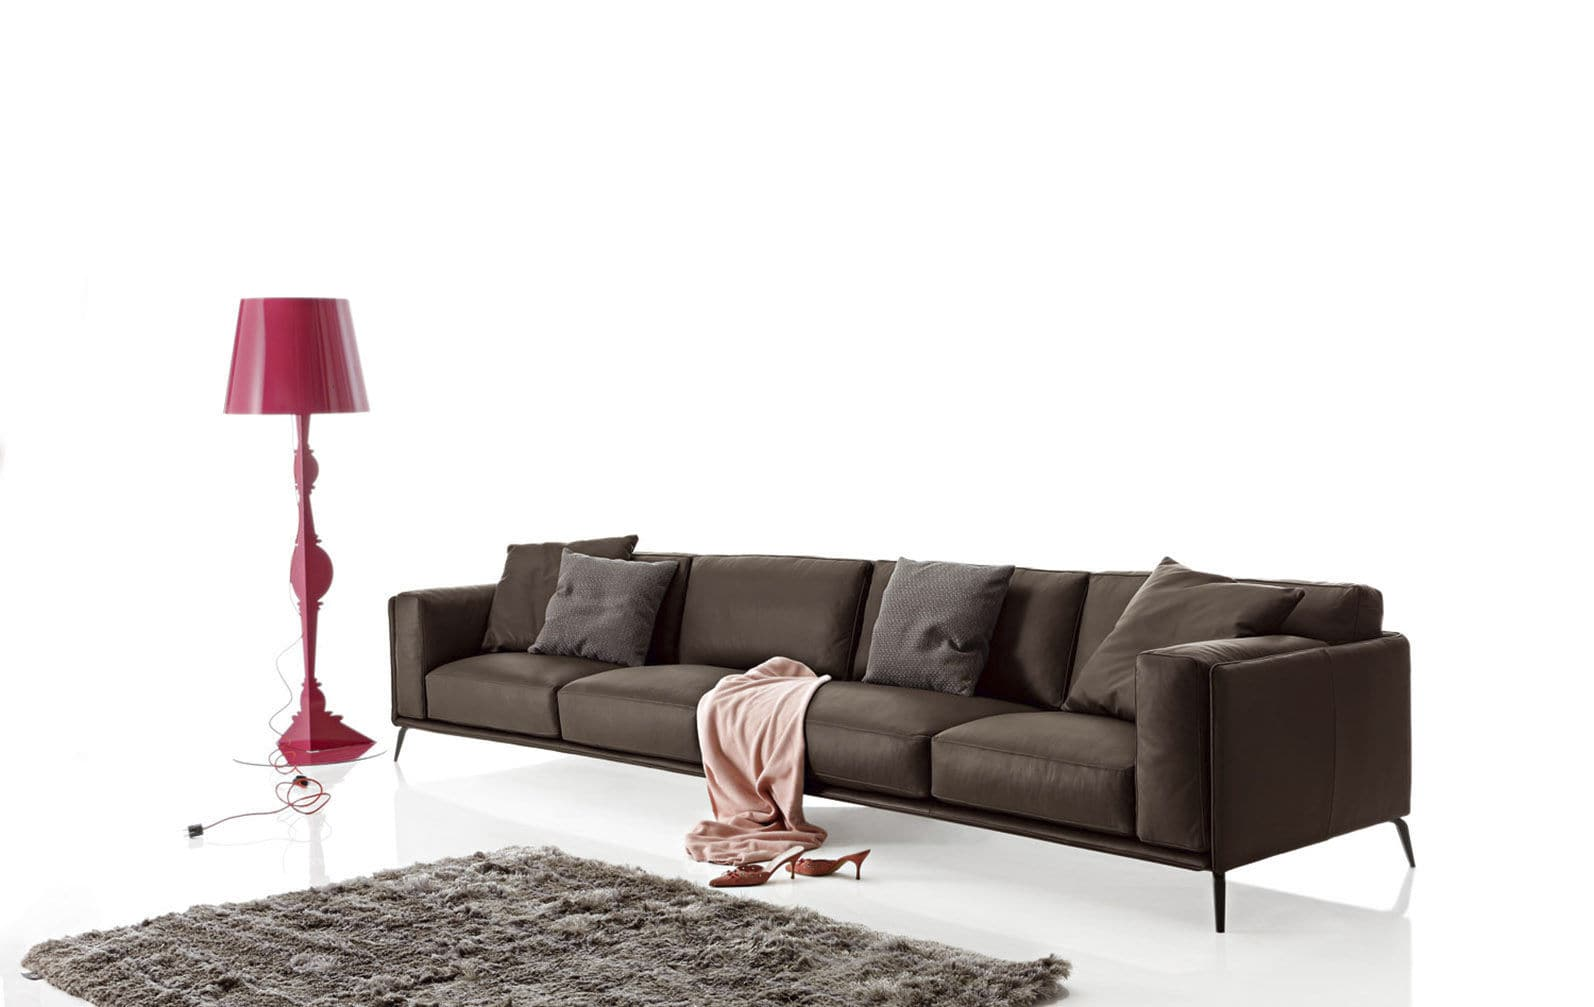 Contemporary Sofa / Leather / Synthetic Leather / Cast Aluminum   KRIS LOW  By Spessotto U0026 Agnoletto.